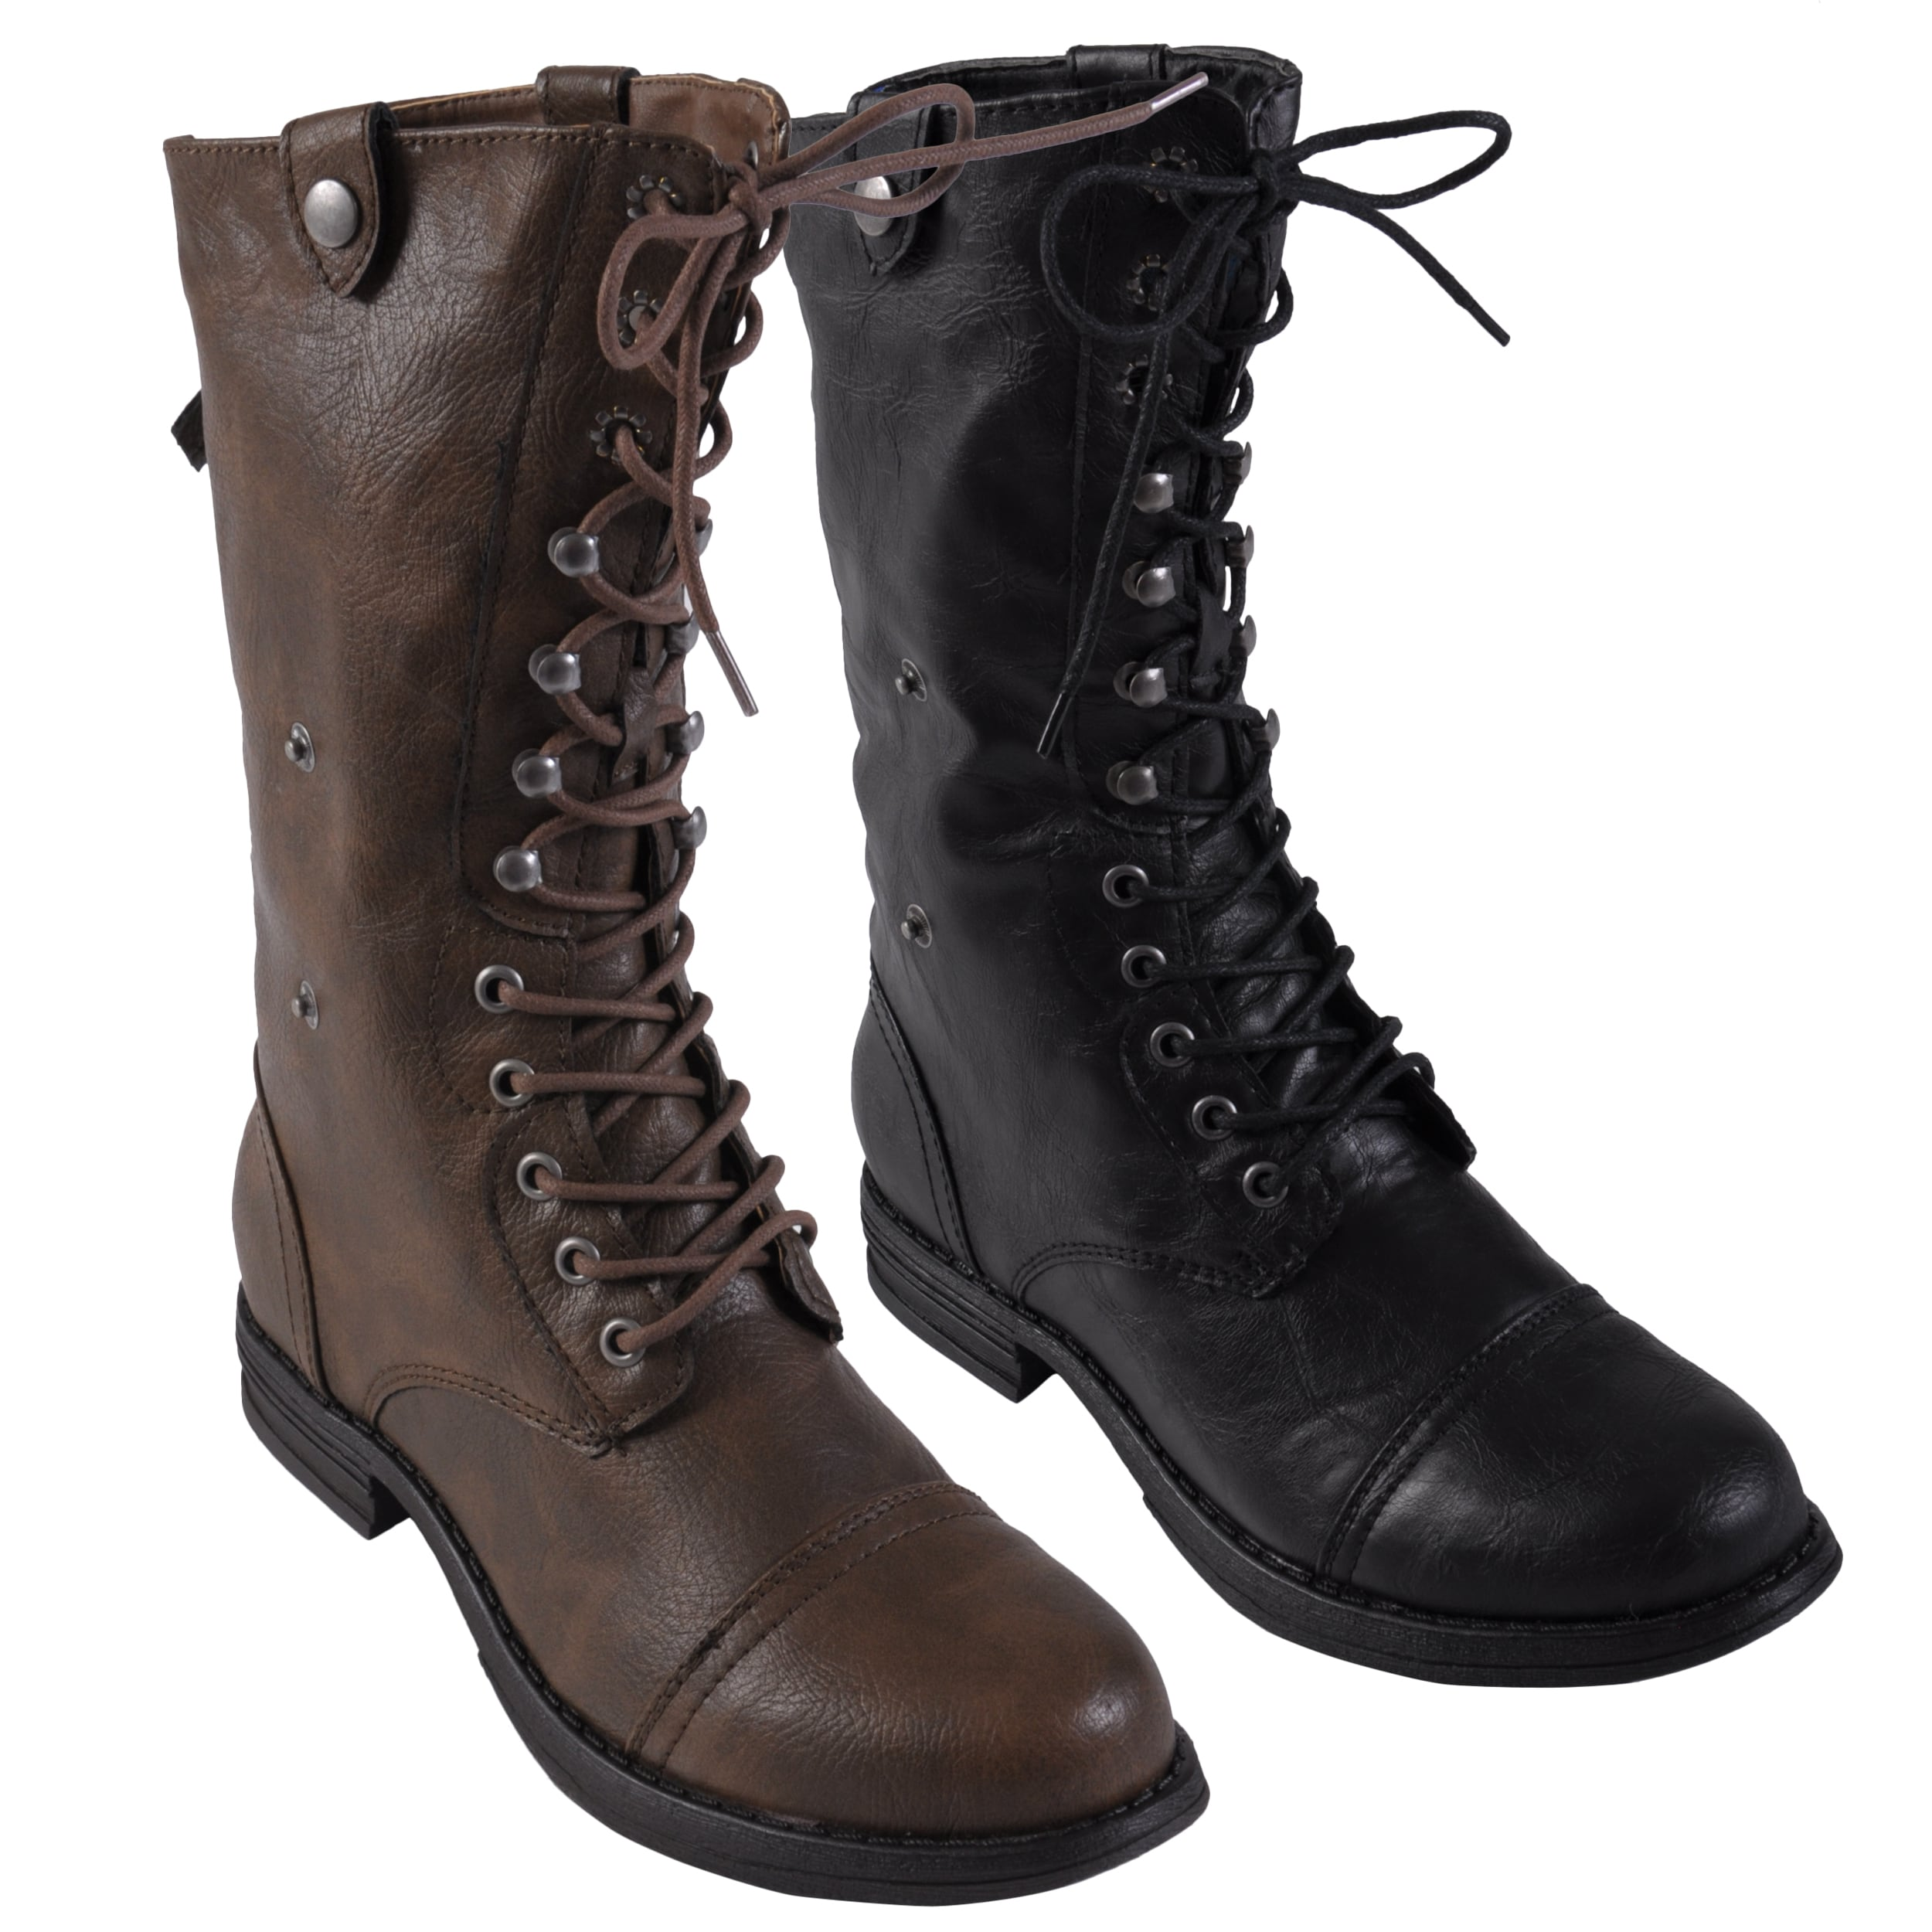 Madden Girl by Steve Madden 'Zorbaa' Lace-up Fold-over Boots